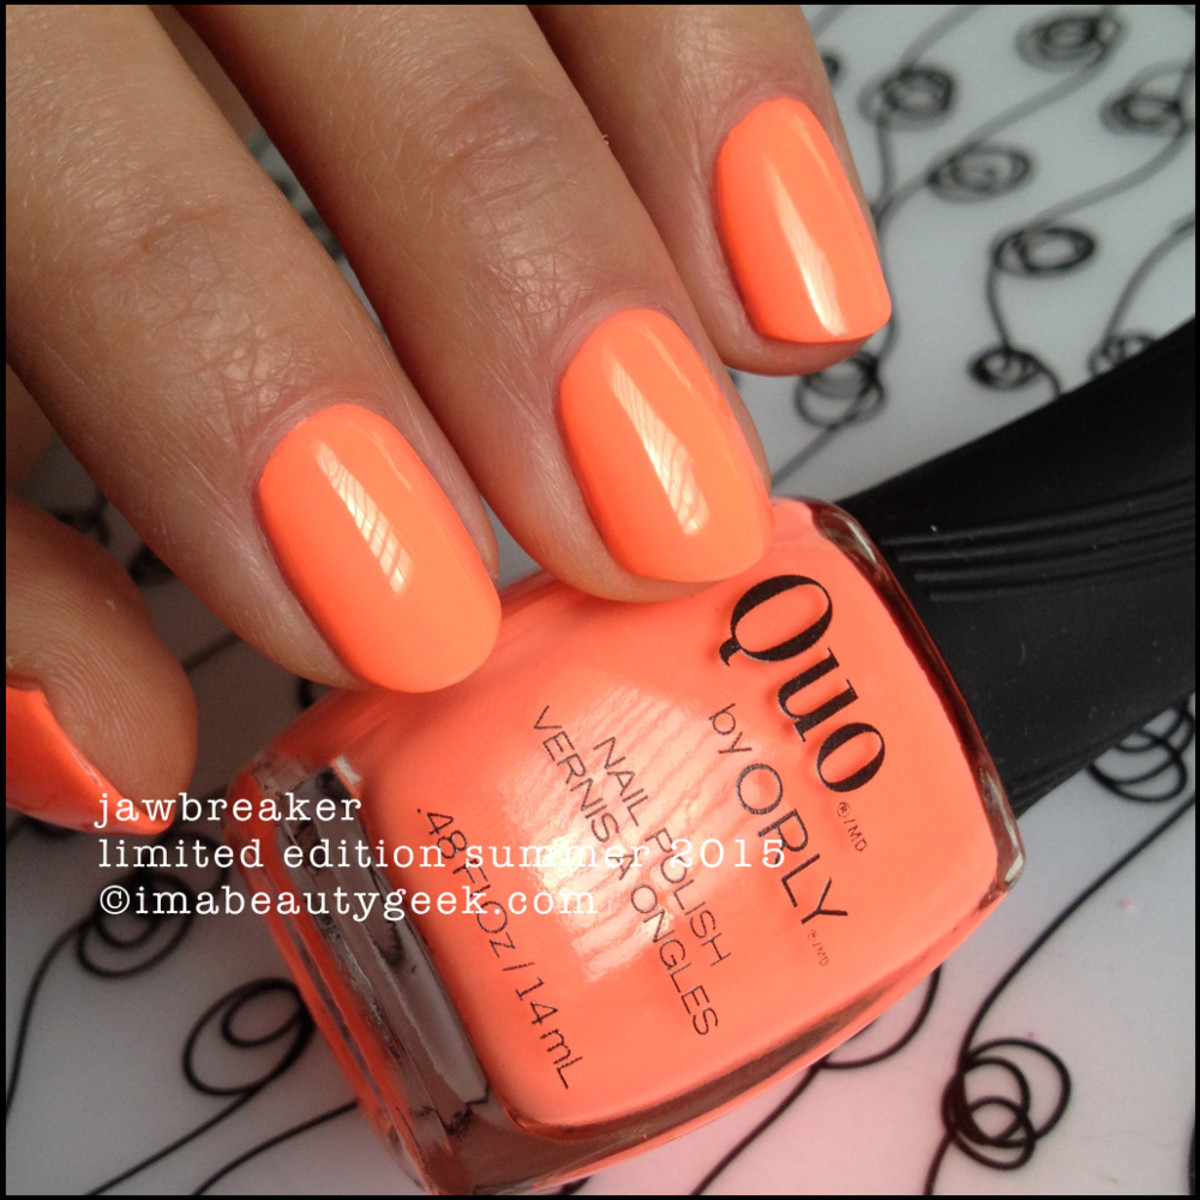 Quo By Orly Jawbreaker - Orly Push the Limit Summer 2015